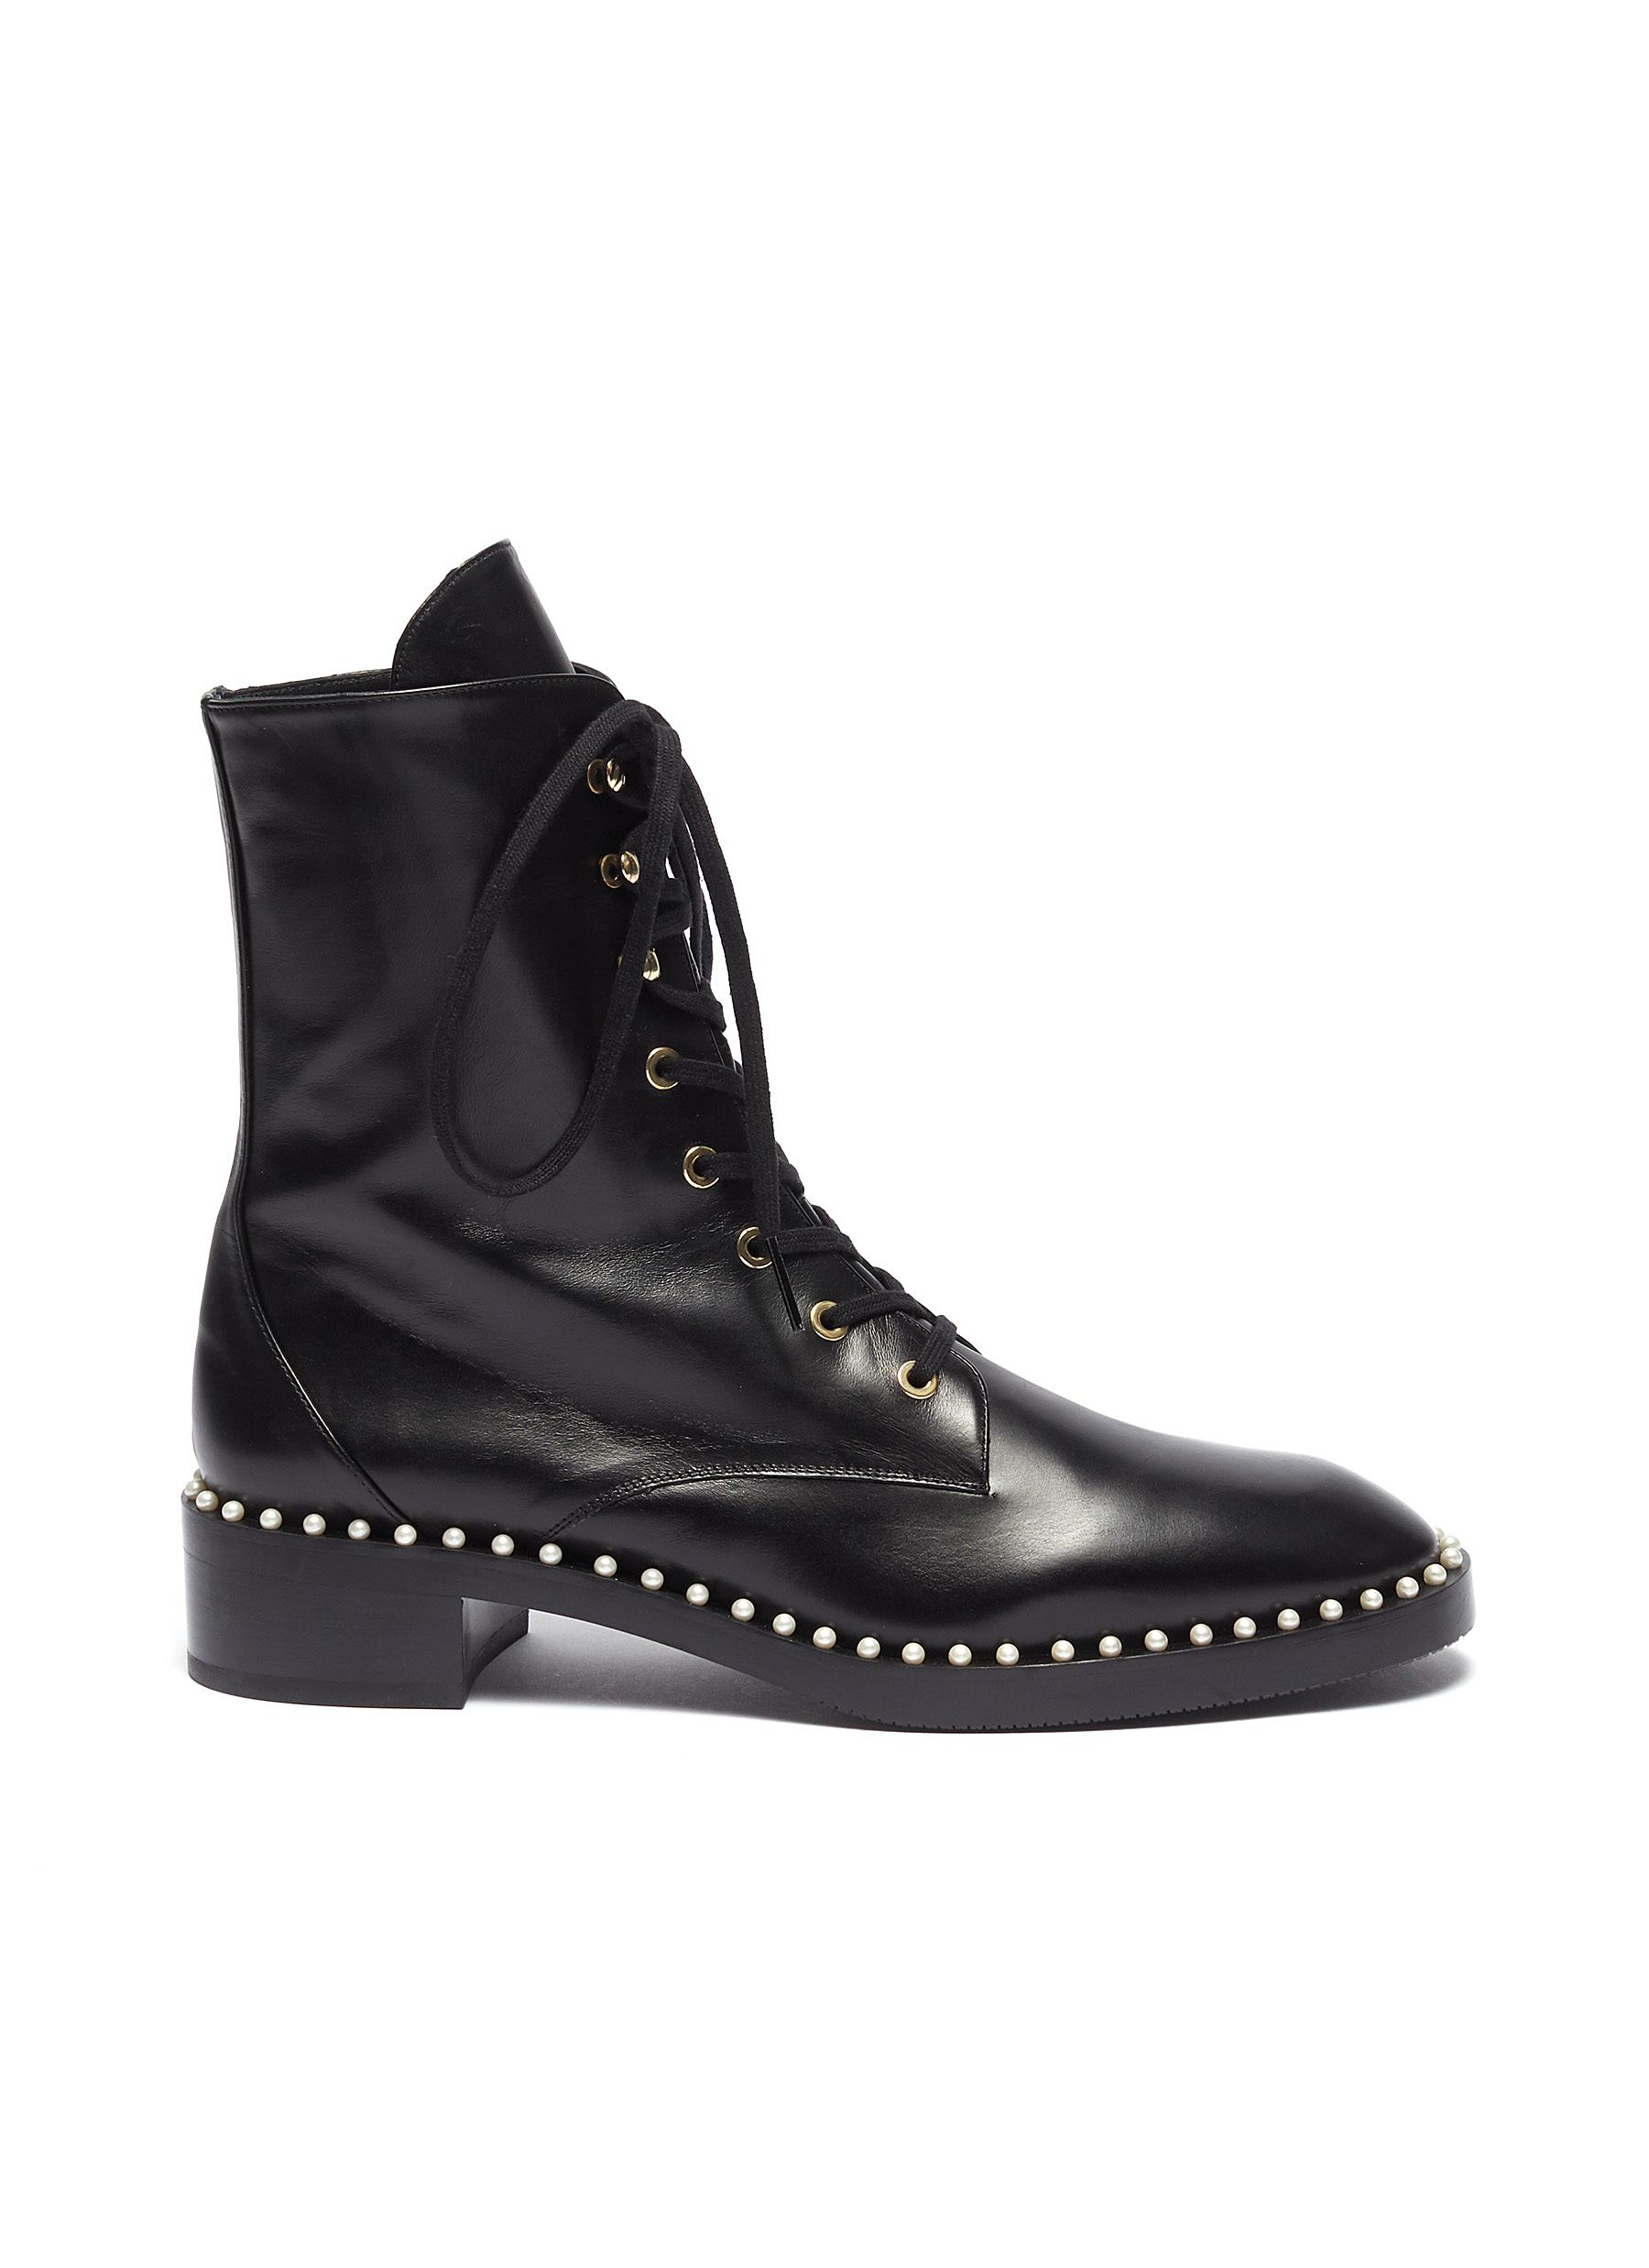 Sondra faux pearl leather combat boots by Stuart Weitzman